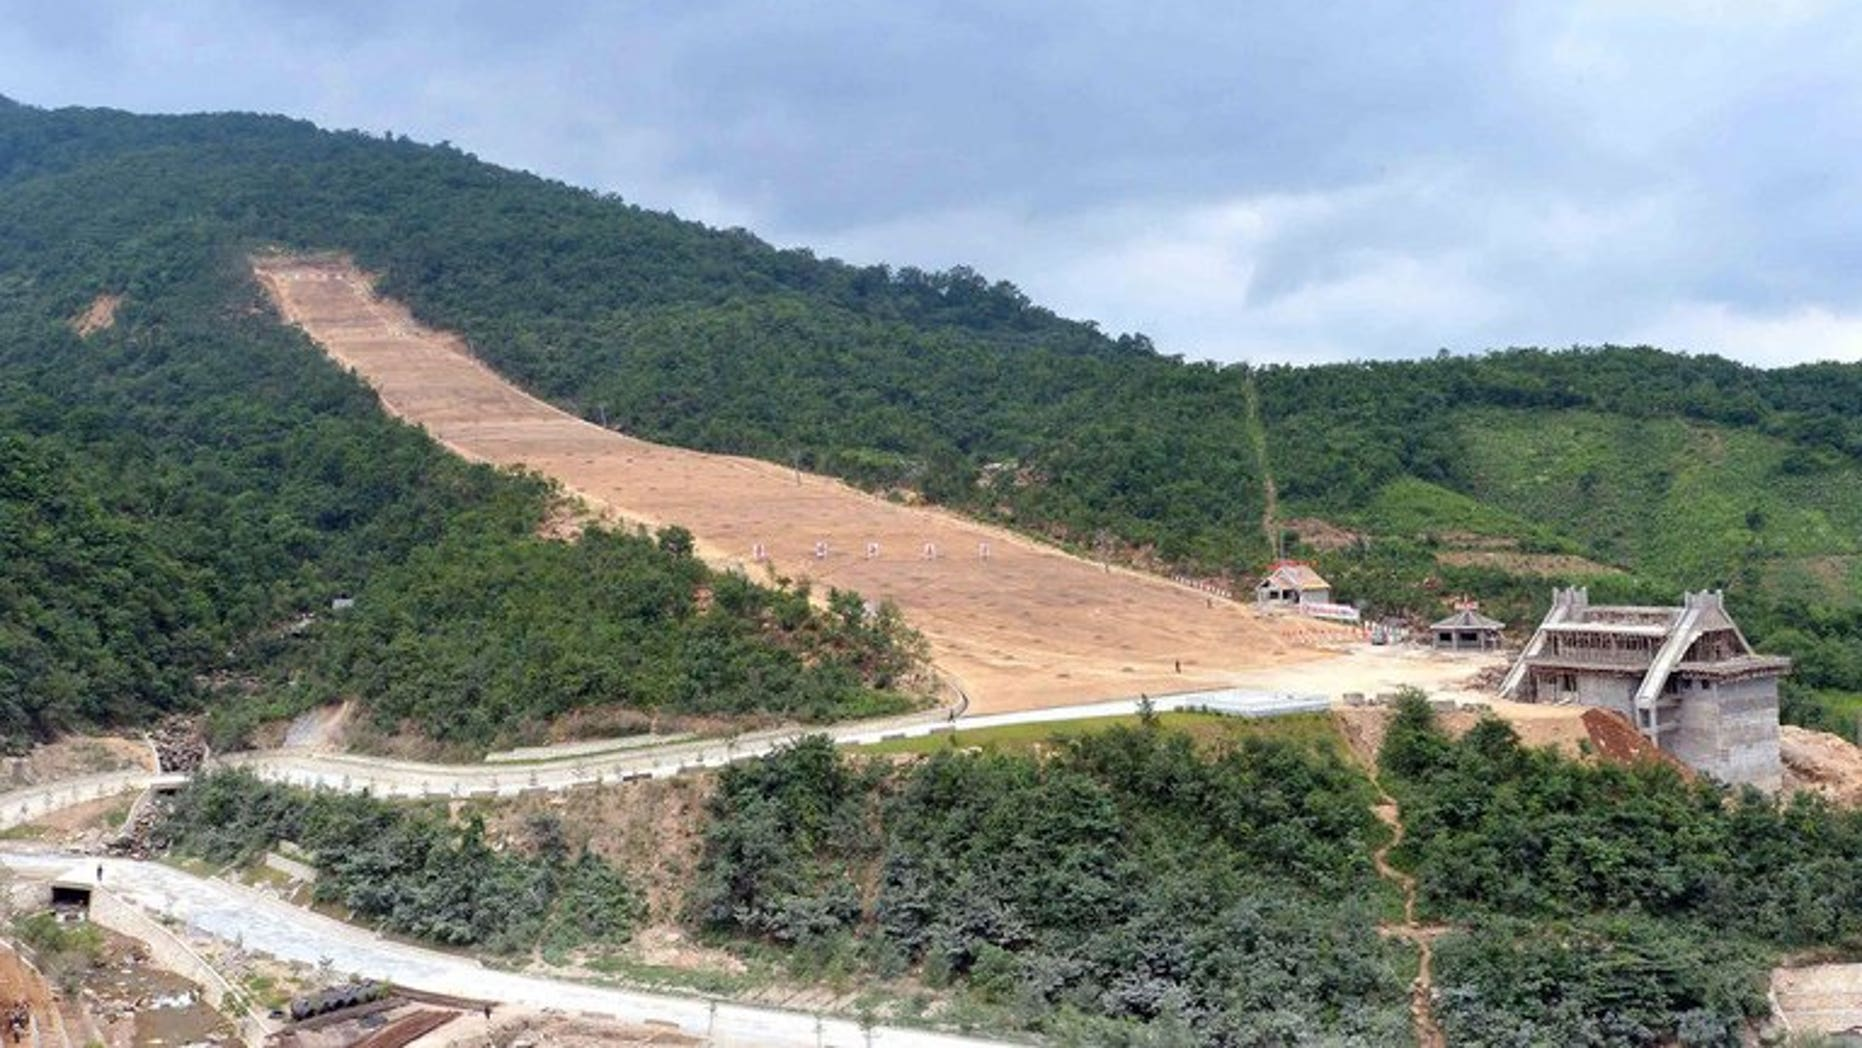 The construction site of the Ski Resort on Masik Pass, North Korea, August 18, 2013. North Korea expressed anger Saturday after Switzerland blocked a deal to supply key equipment for a ski resort which has been under construction as one of leader Kim Jong-Un's pet projects.